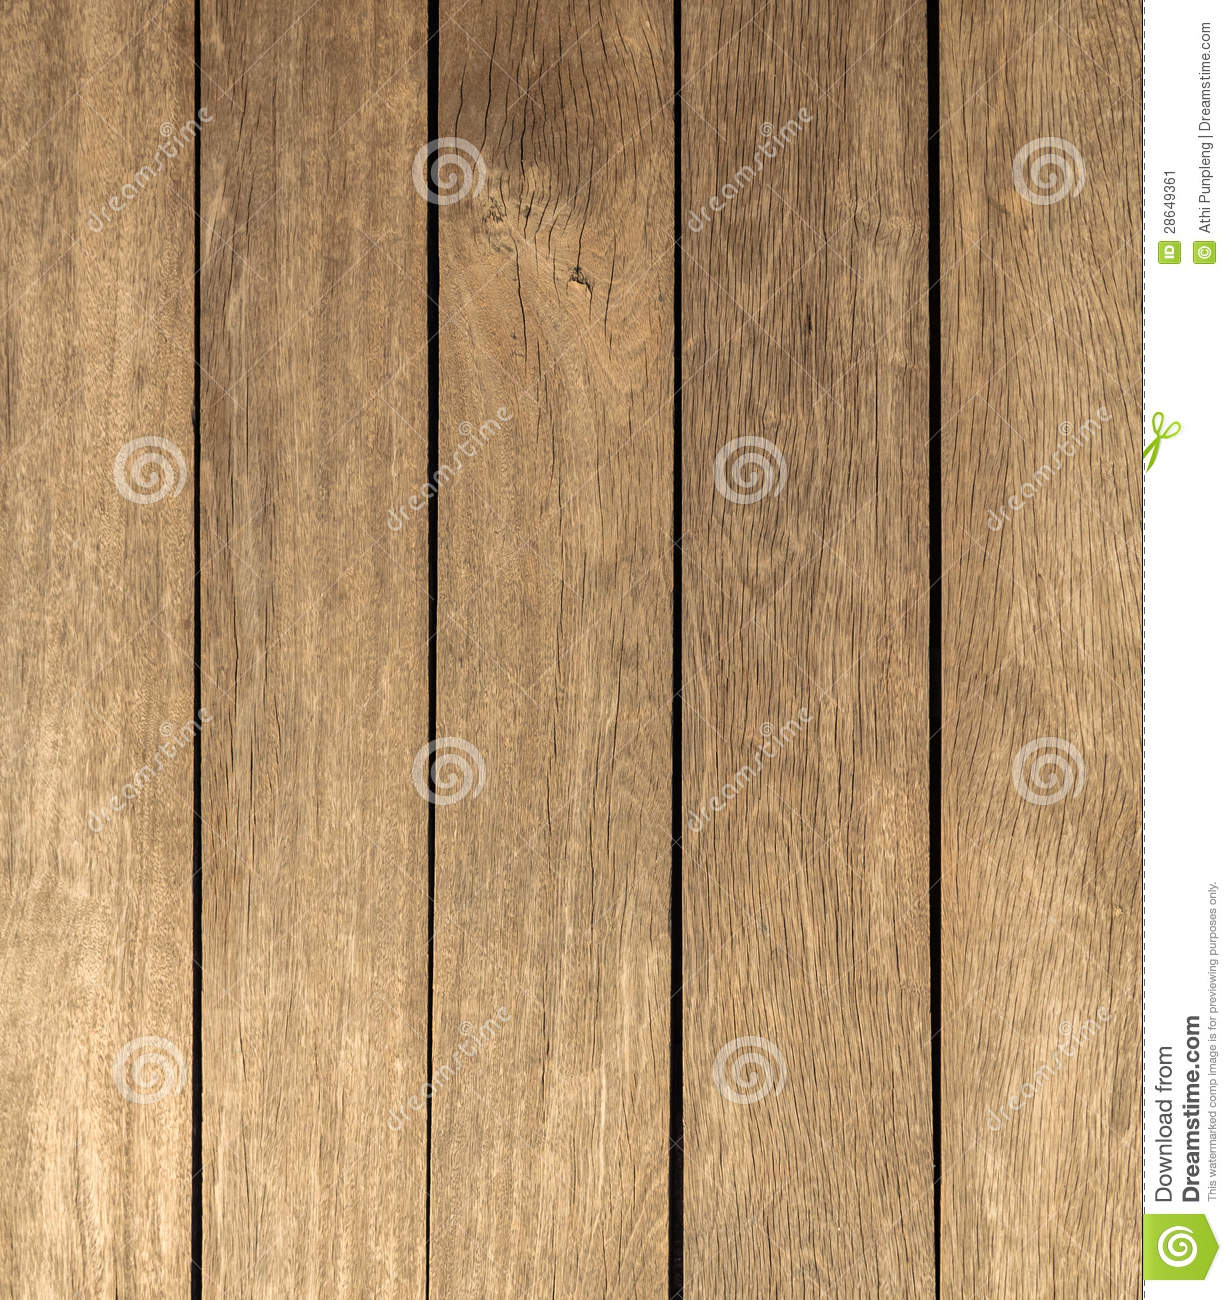 Wood Texture Background In Vertical Pattern, Natural Color